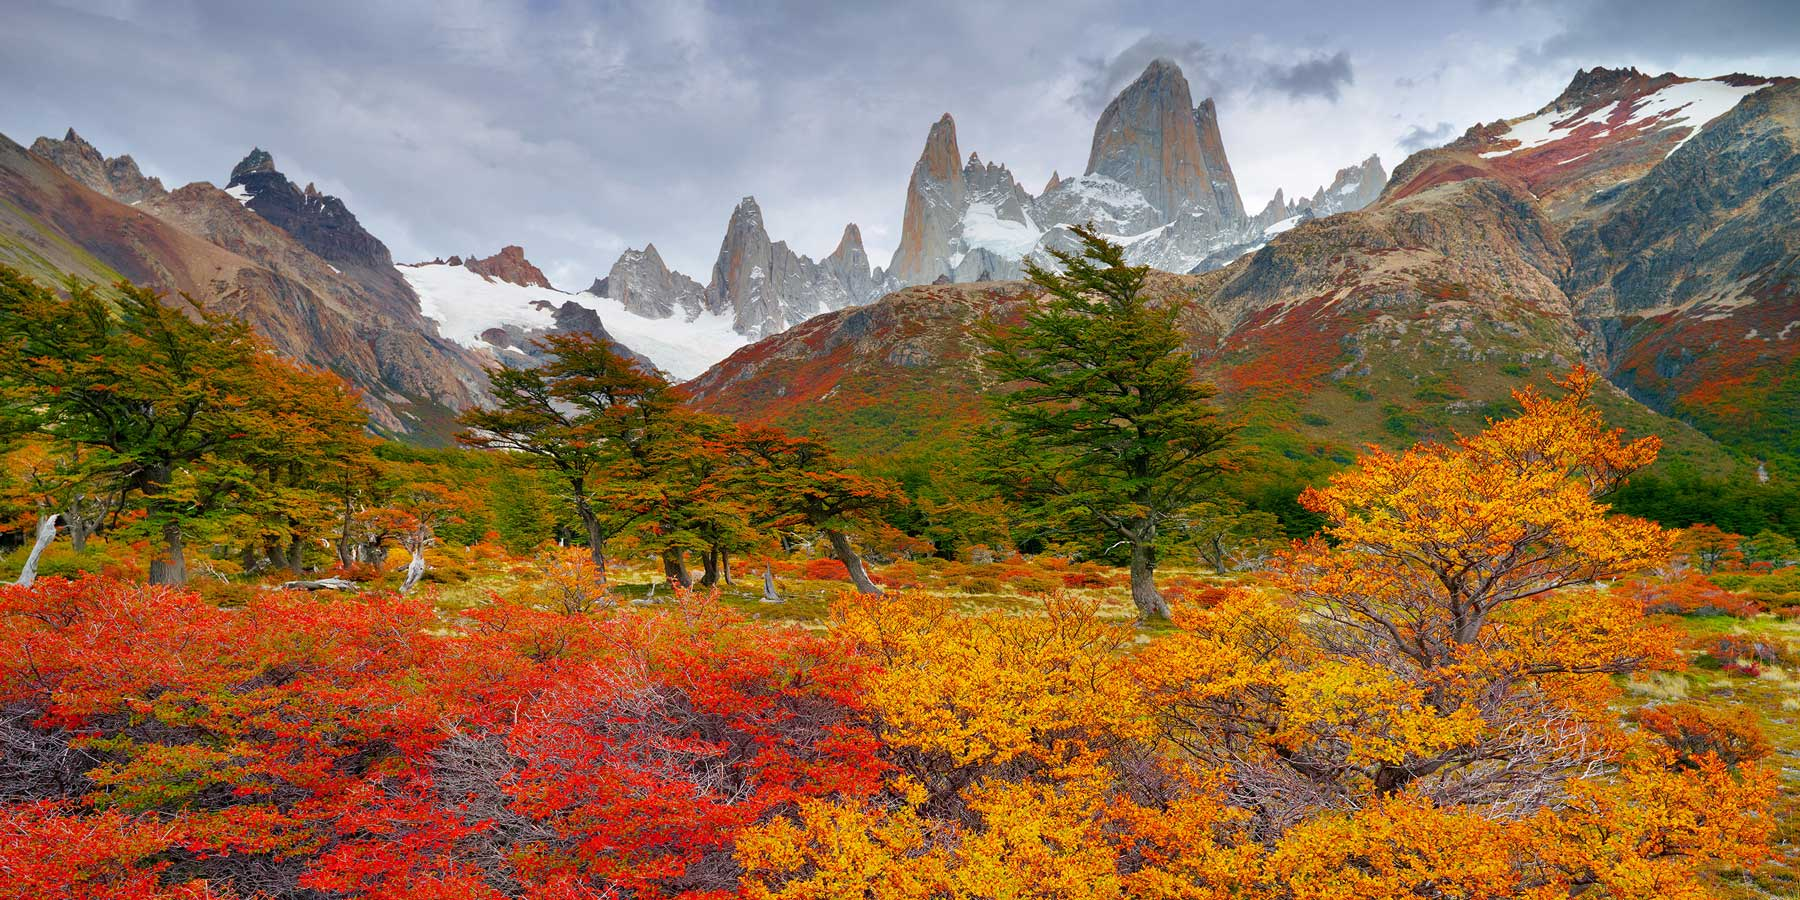 Autumn colours of Patagonia against the backdrop of Mount Fitzroy and glaciers